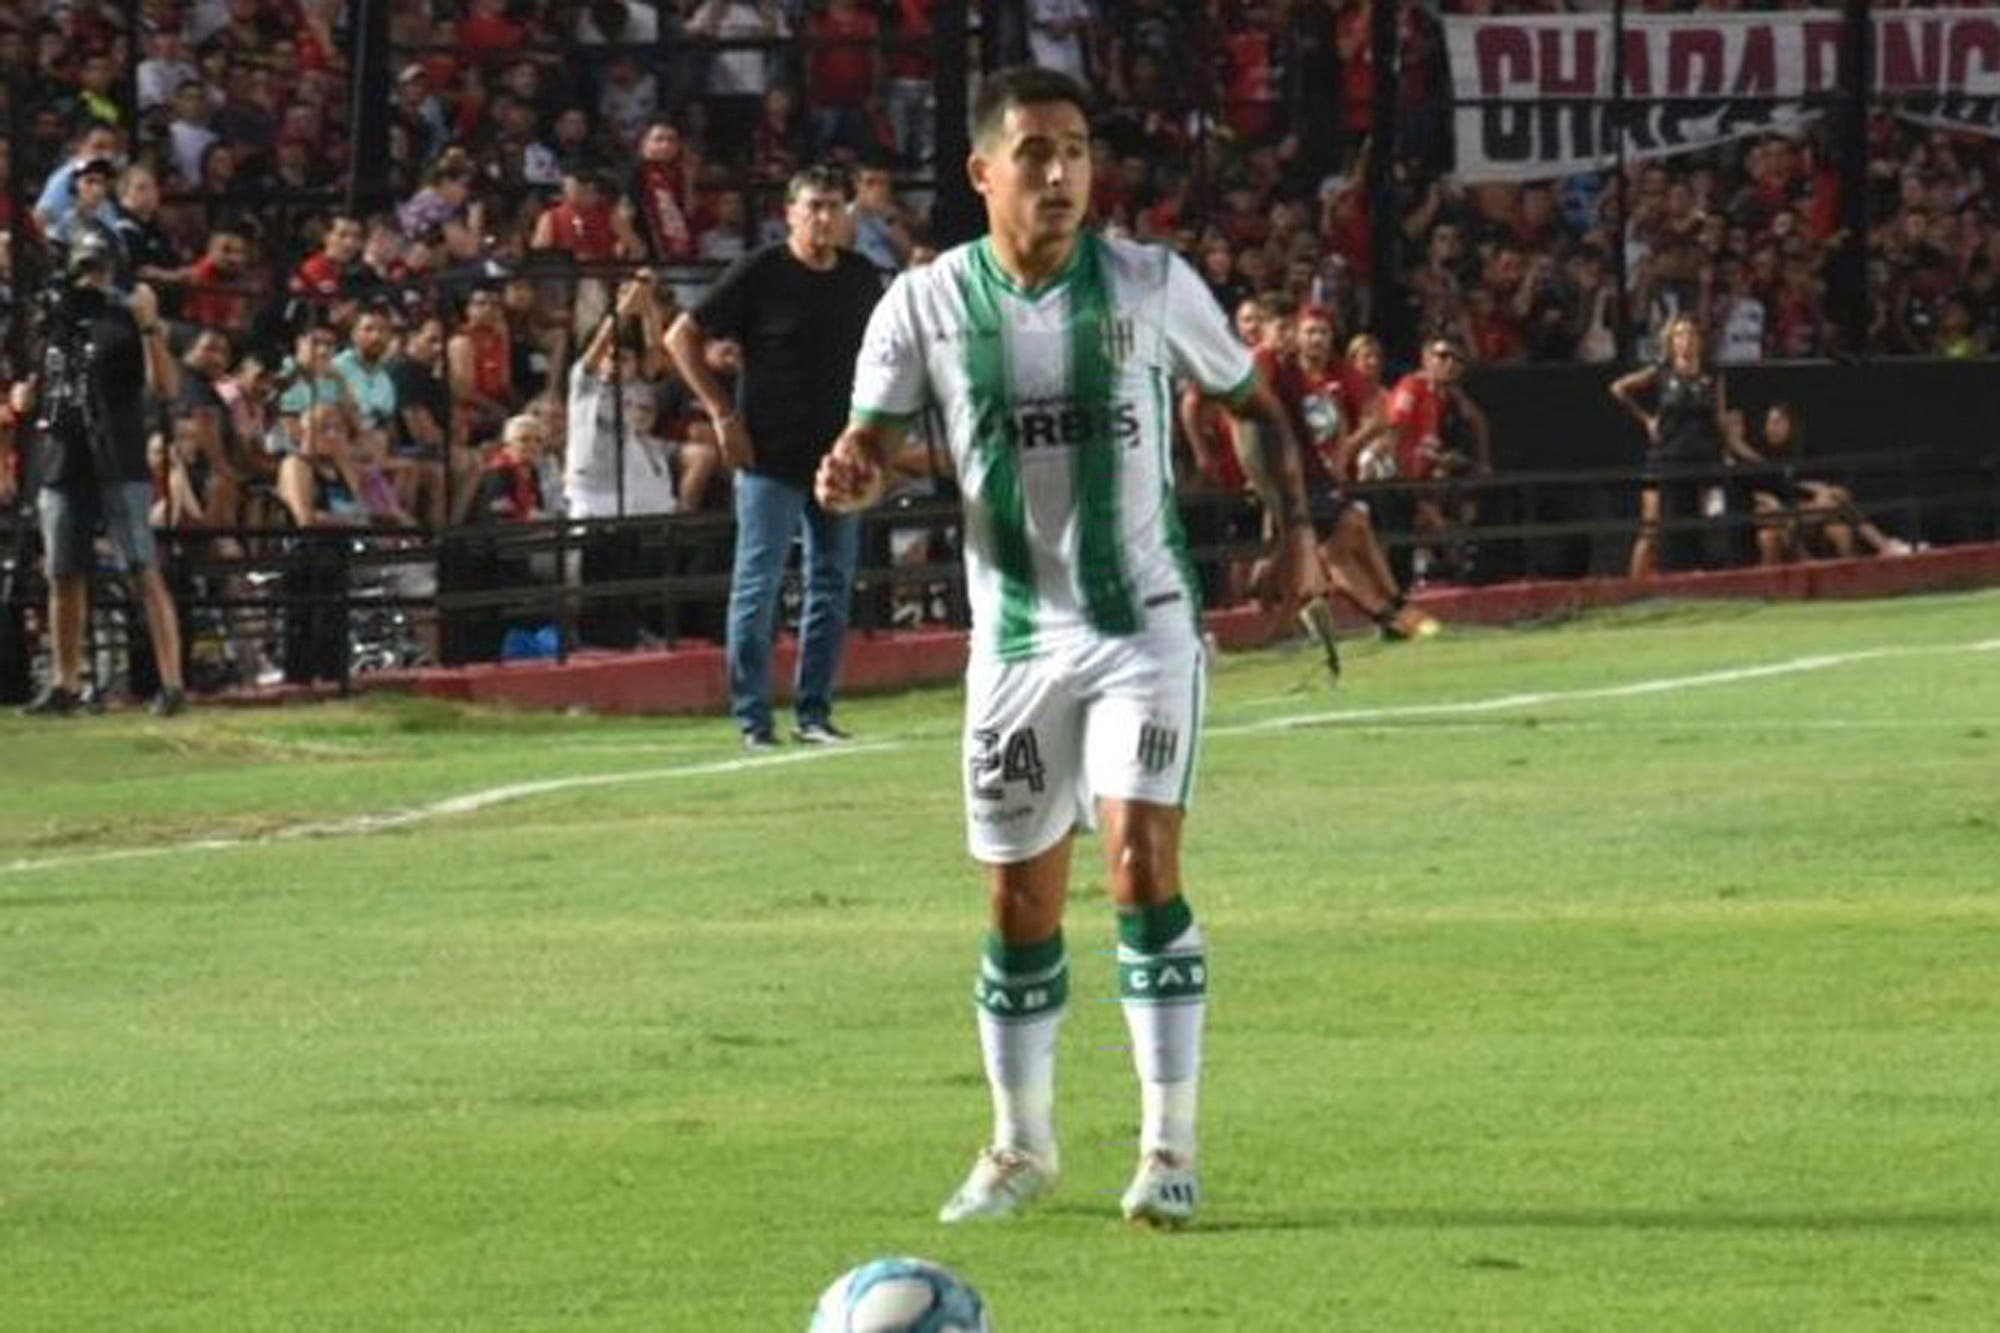 Banfield-Aldosivi, por la Superliga: horario, TV y formaciones